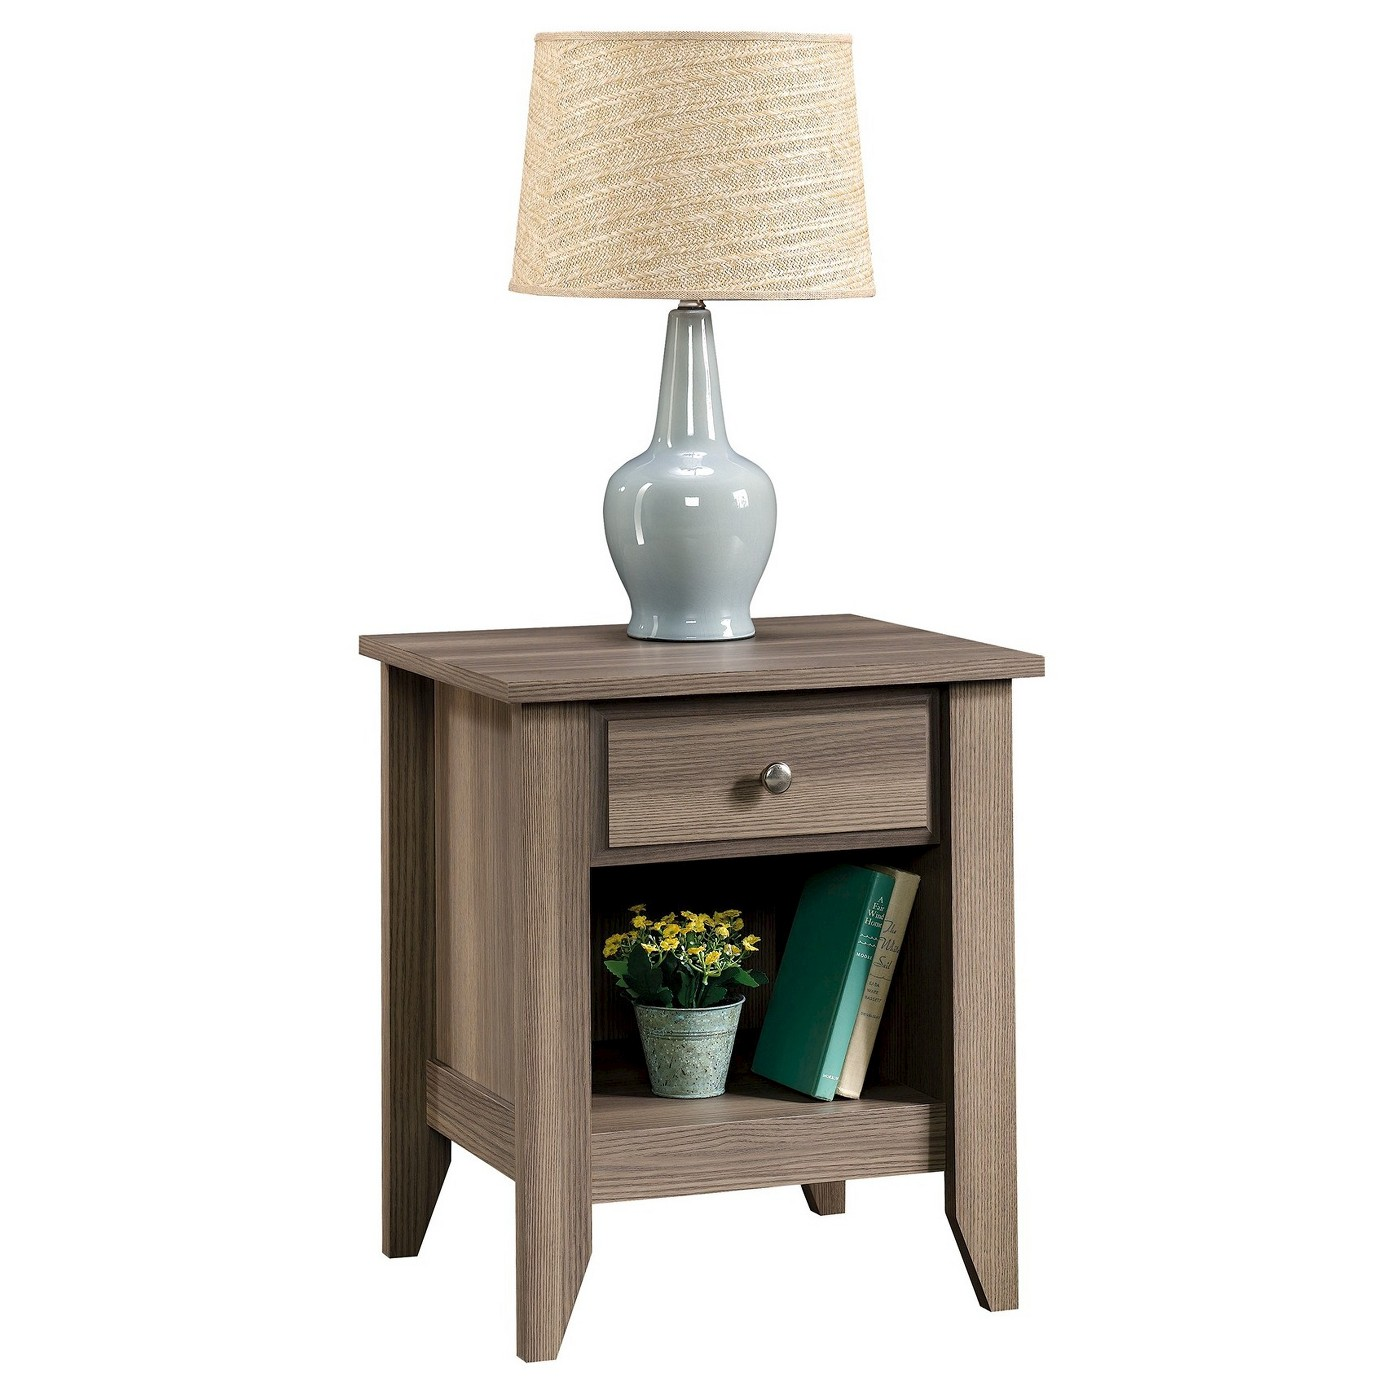 Sauder Shoal Creek Night Stand, Diamond Ash Finish